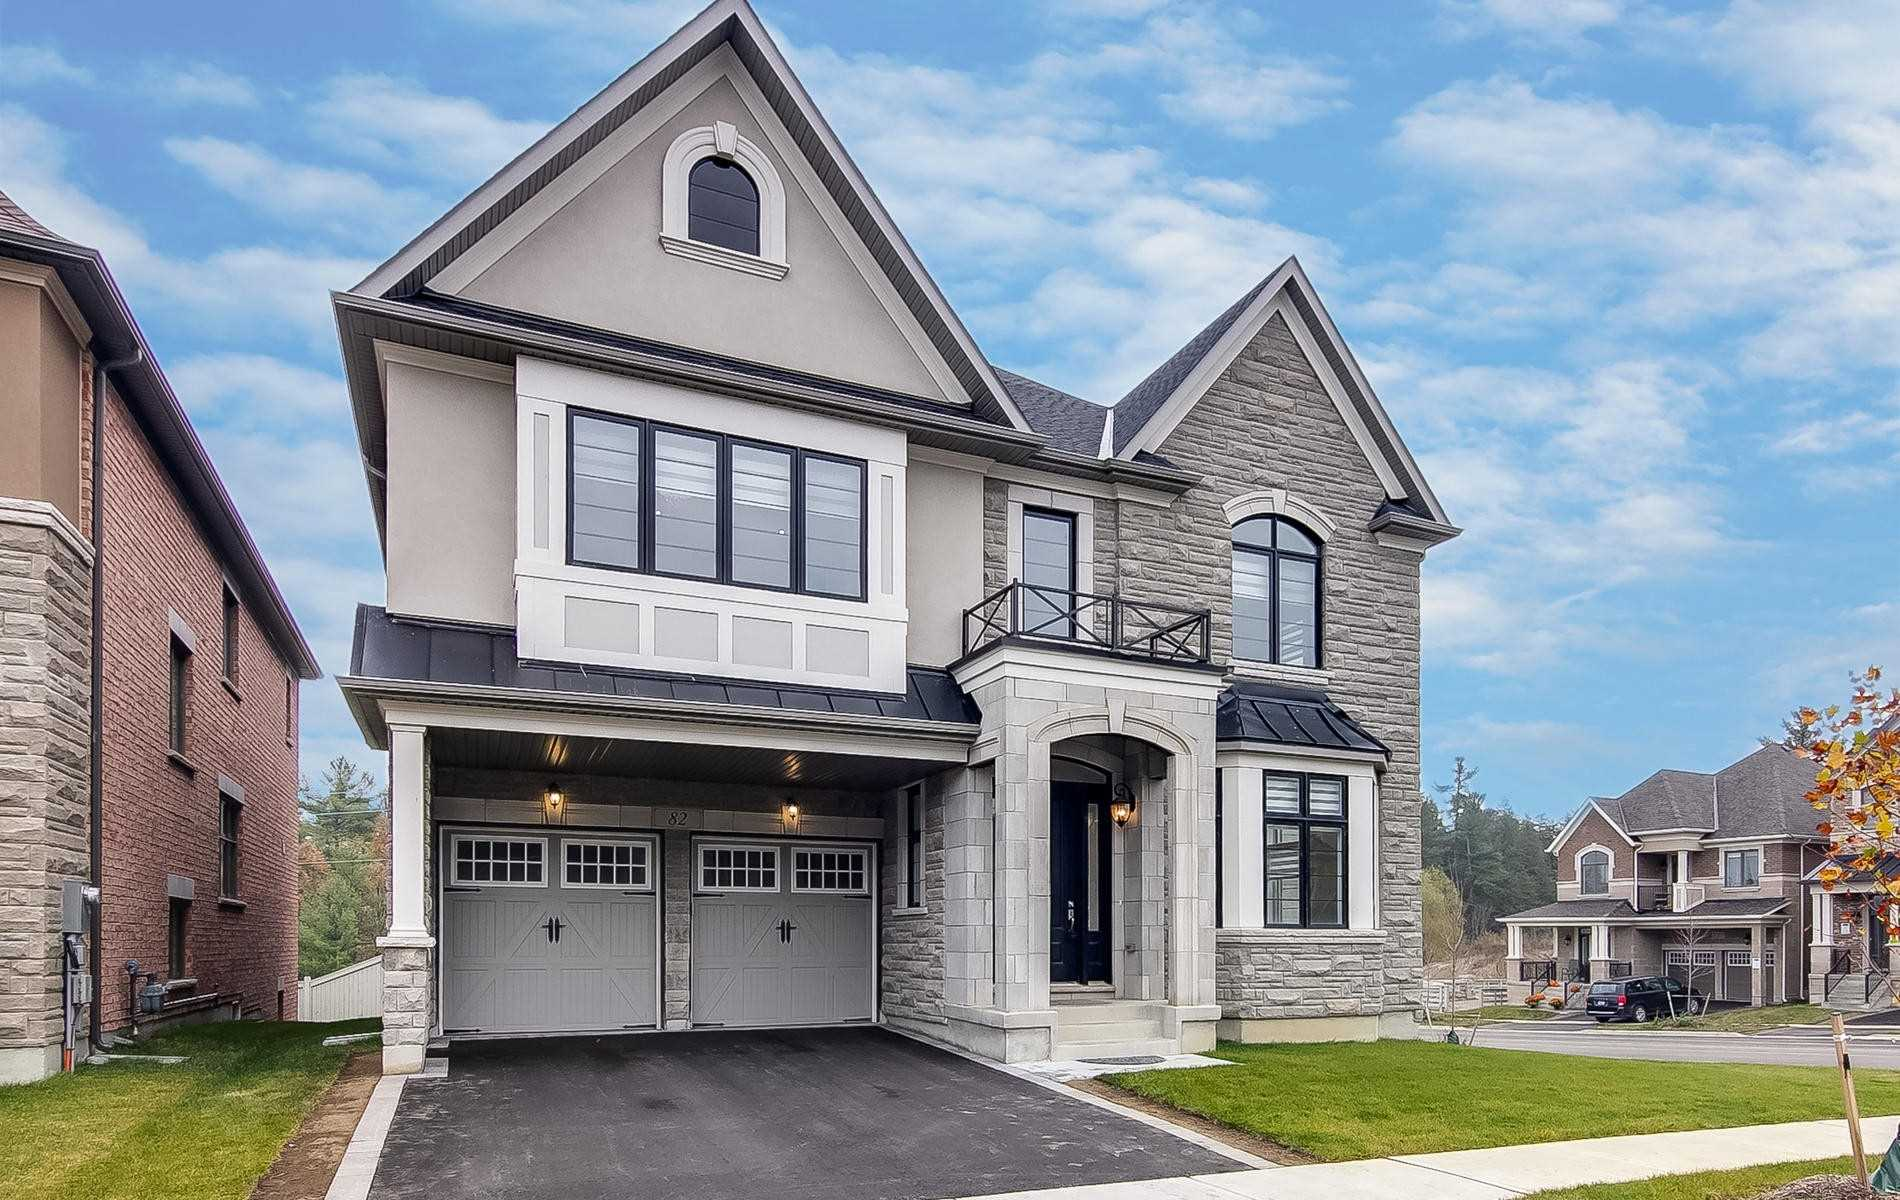 Detached house For Lease In Vaughan - 82 Ridgepoint Rd, Vaughan, Ontario, Canada L4H 4T3 , 5 Bedrooms Bedrooms, ,4 BathroomsBathrooms,Detached,For Lease,Ridgepoint